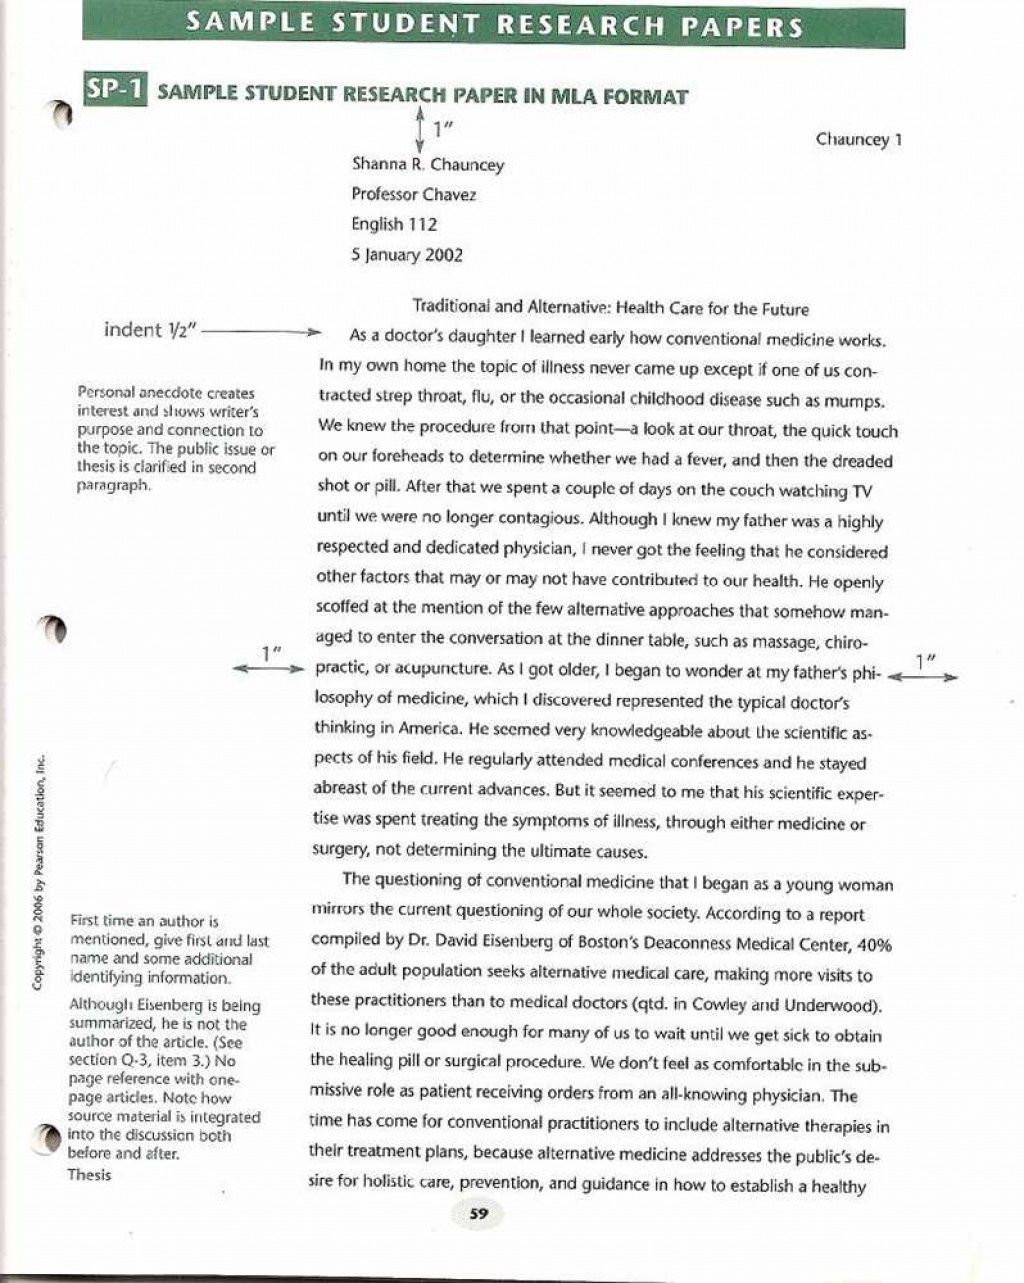 020 Research Paper Best Topics Stupendous Reddit Sports Top 10 In Computer Science Large